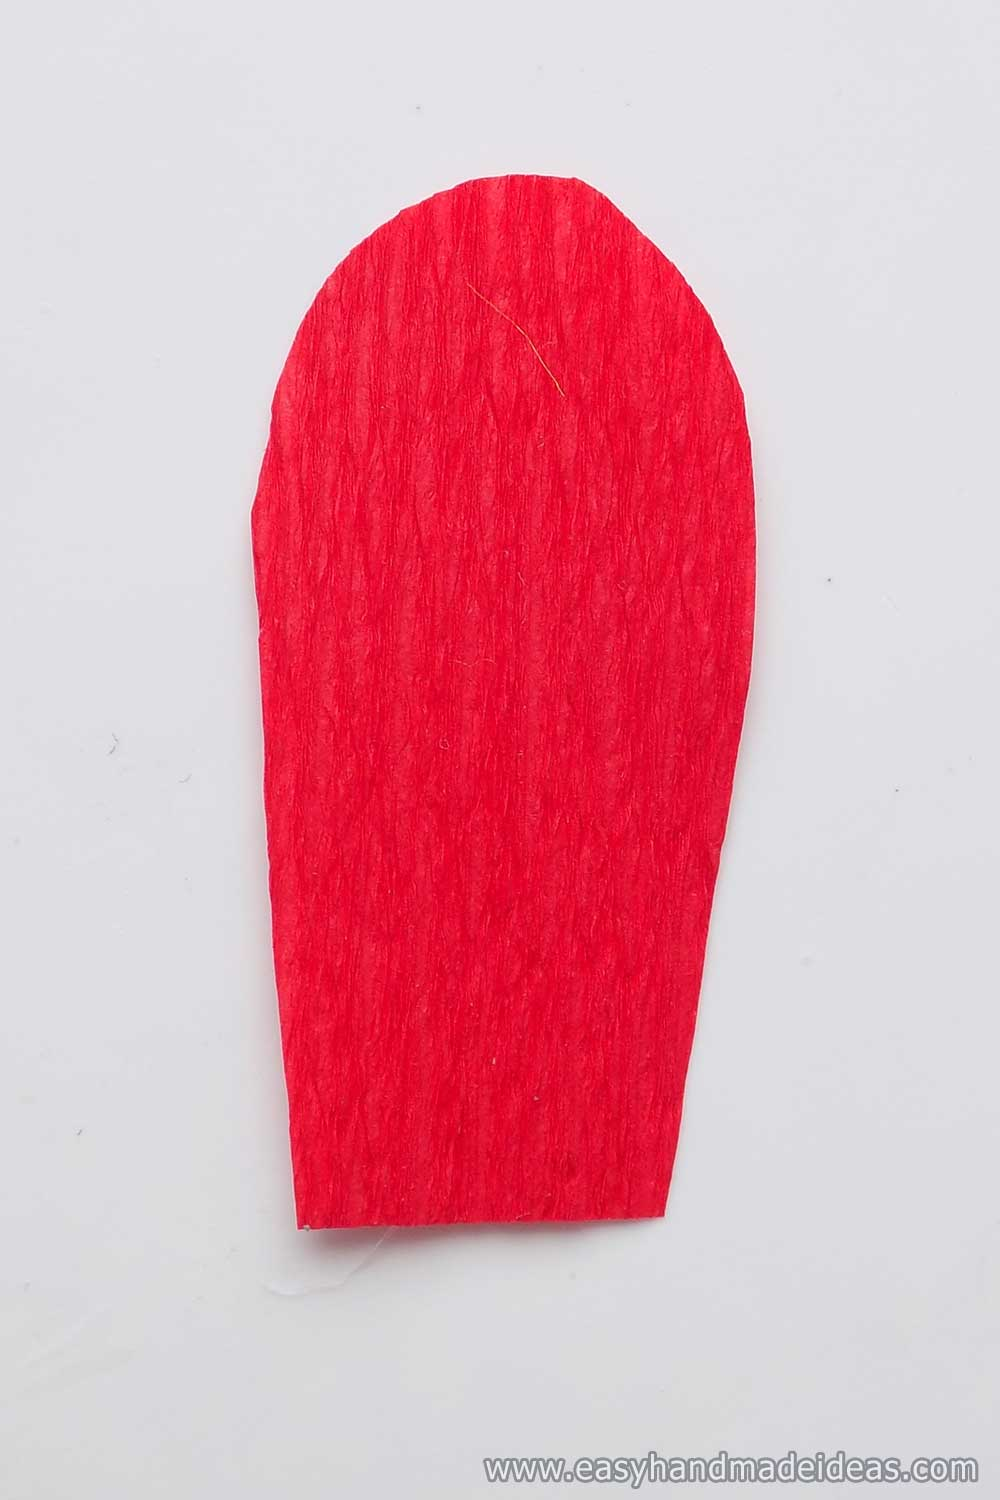 Rounded Sheet of Red Paper